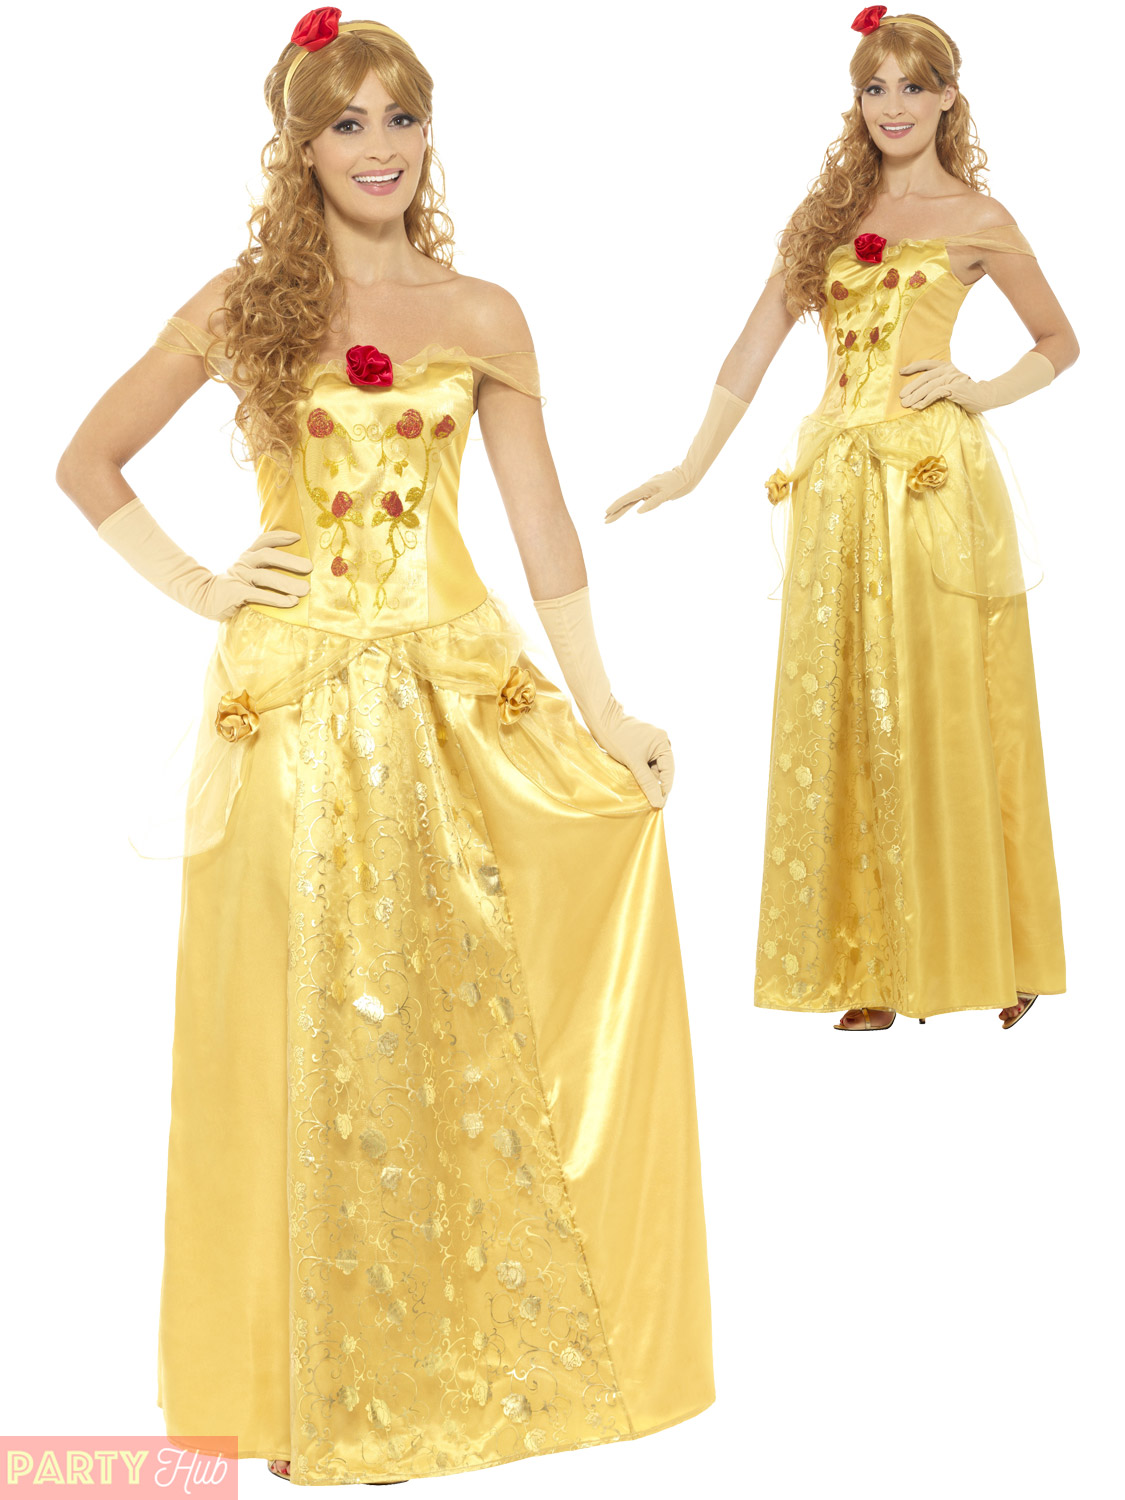 Ladies-Golden-Princess-Costume-Adults-Fairytale-Belle-Womens-  sc 1 st  eBay & Ladies Golden Princess Costume Adults Fairytale Belle Womens Fancy ...